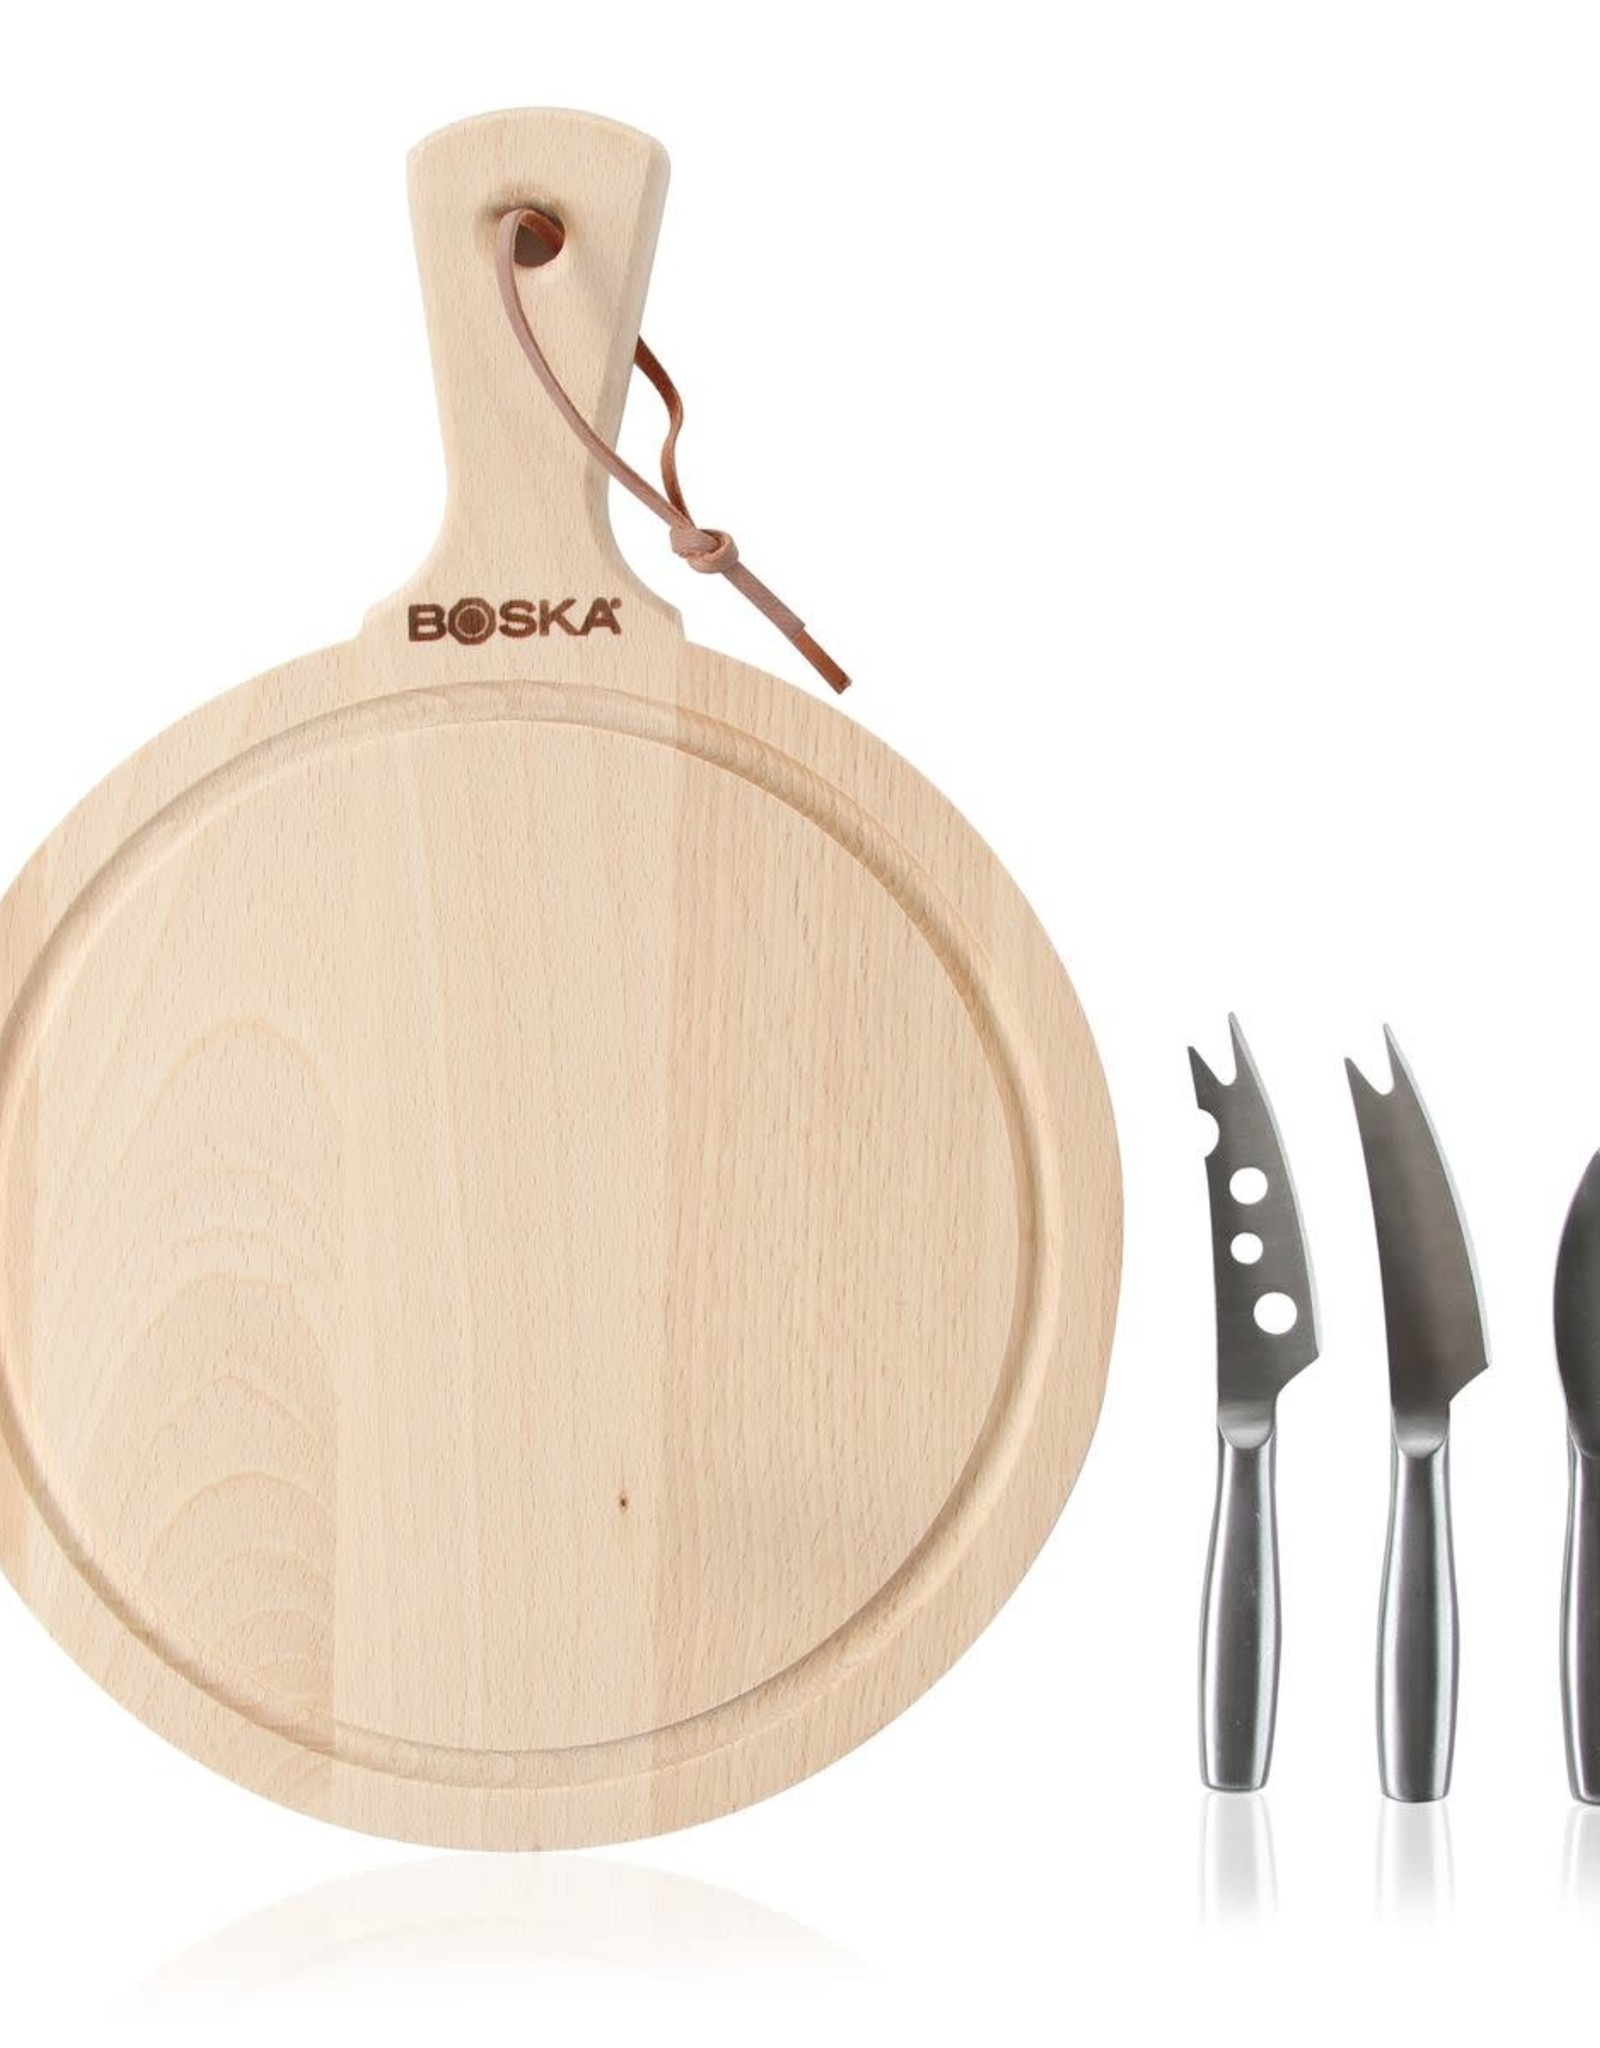 Boska Holland Boska Holland Cheese Set Amigo Round